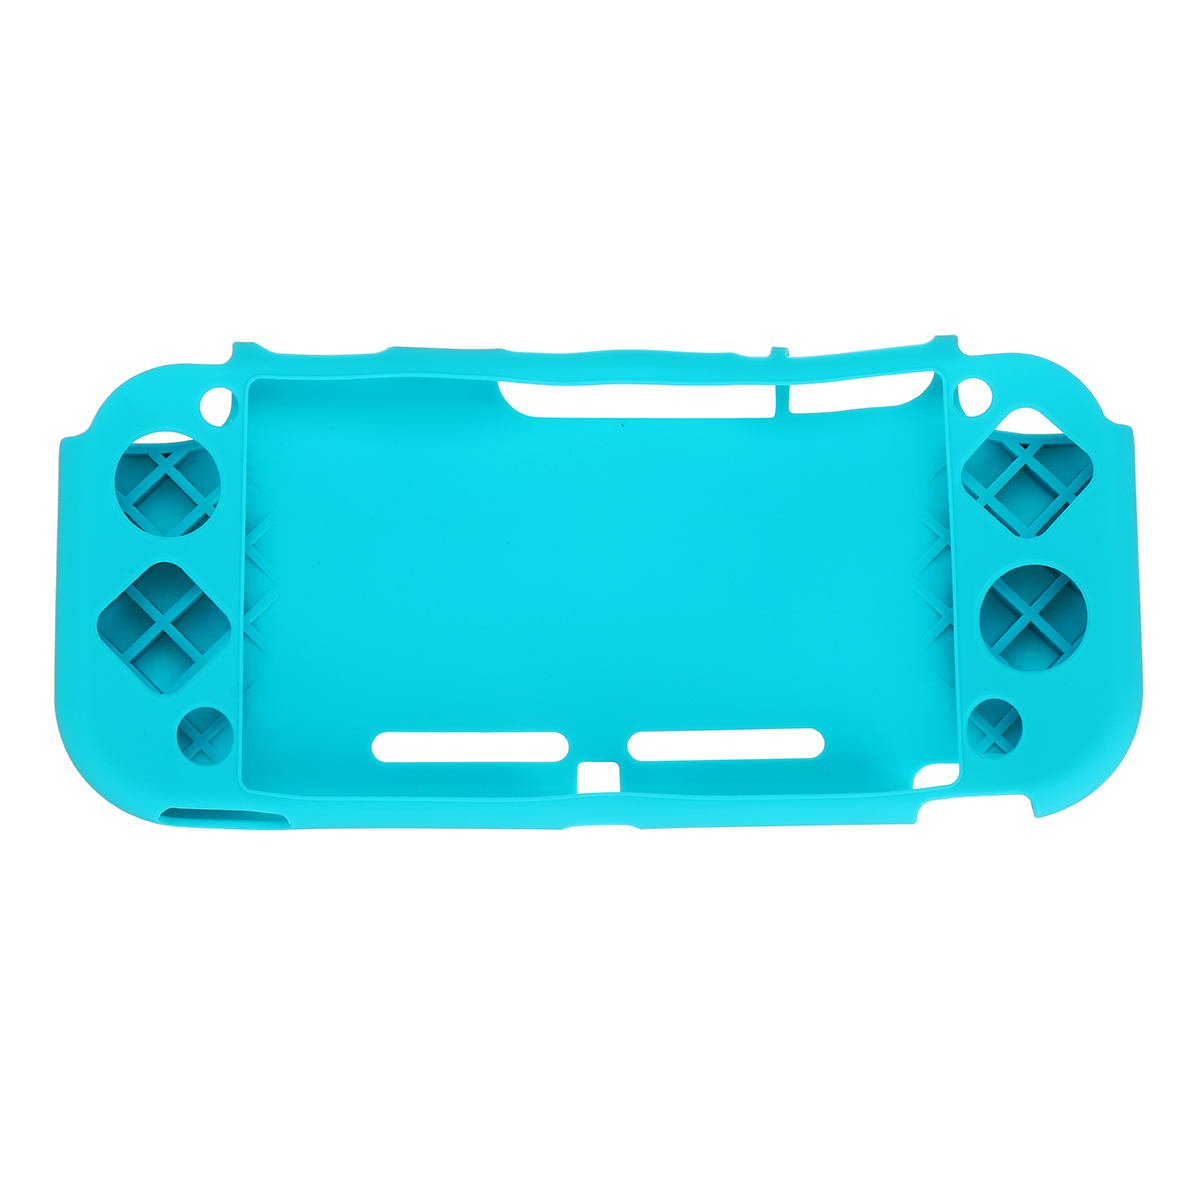 Protective Soft Silicone Case Cover Shell for Nintendo Switch Lite Game Console